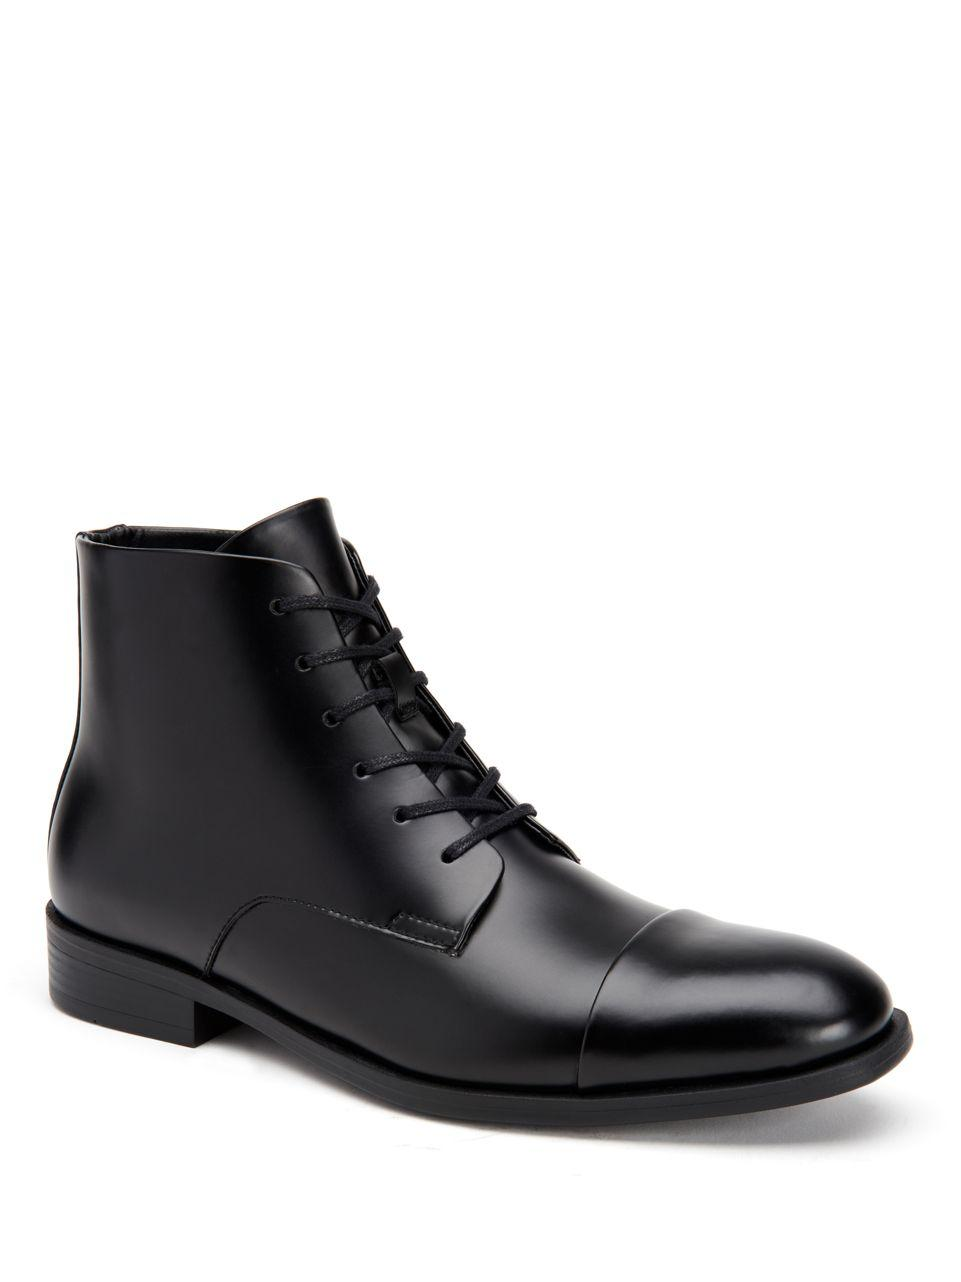 Lyst Calvin Klein Darsey Box Leather Boots In Black For Men